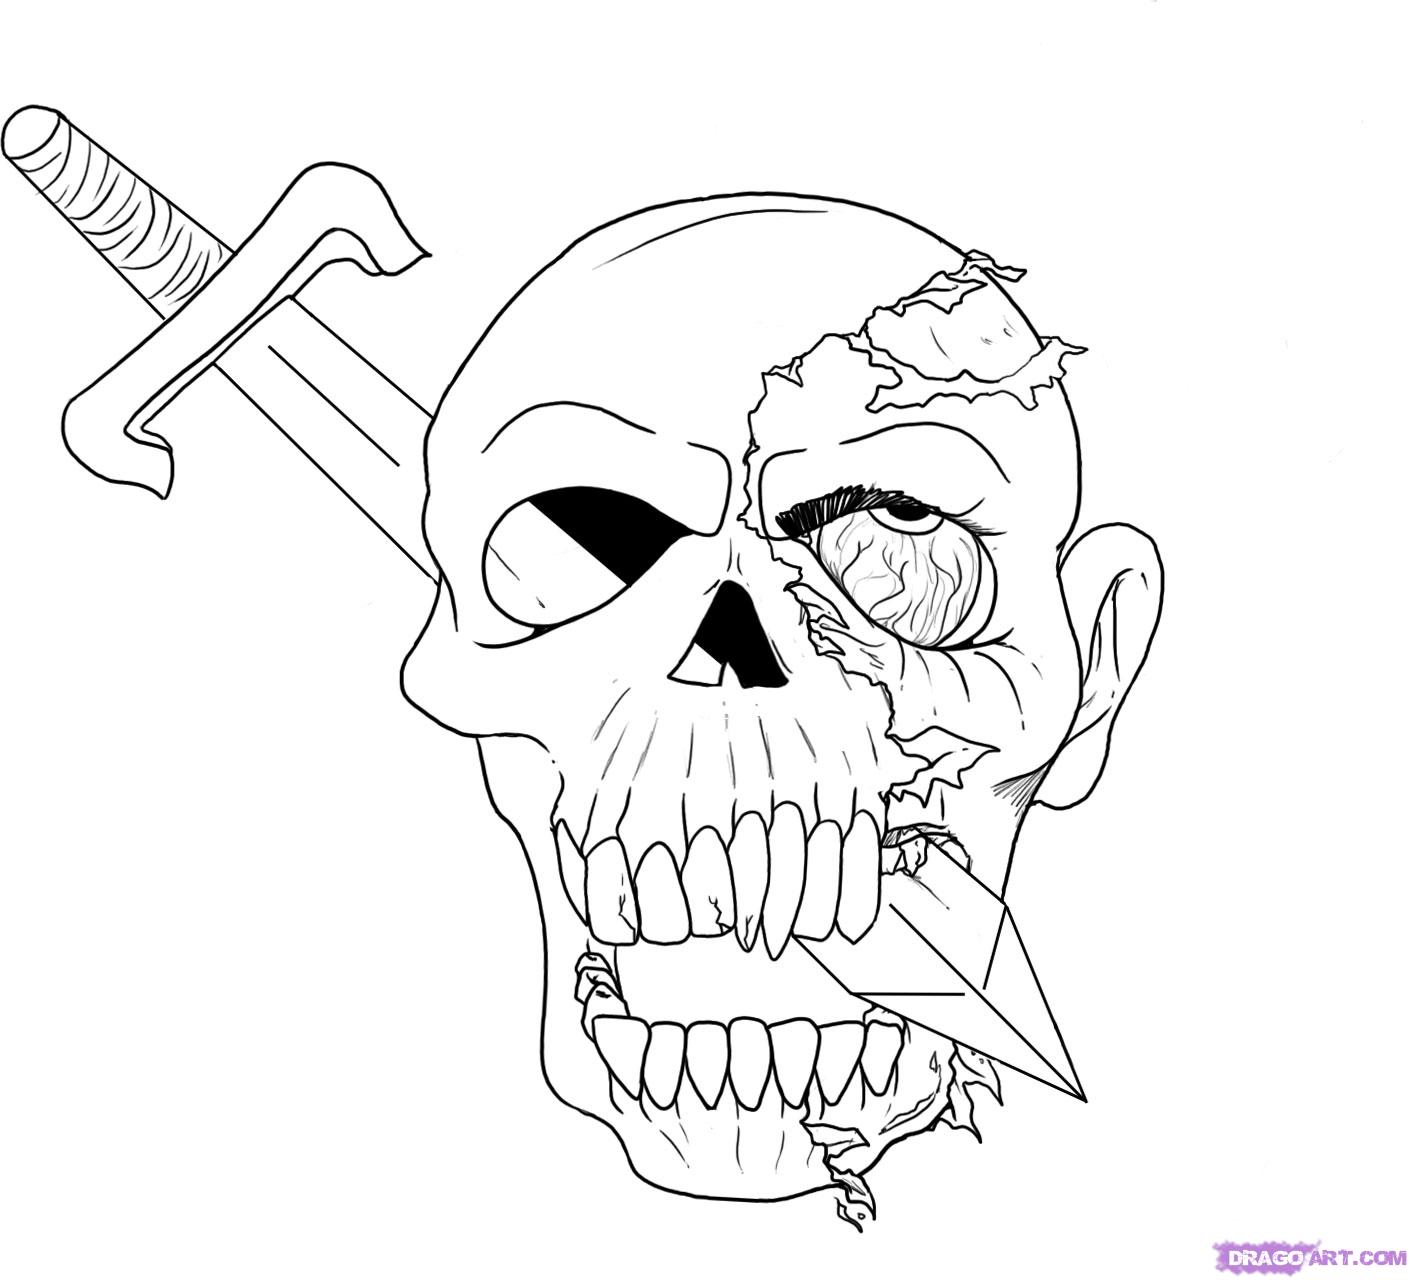 Drawn skull epic A how How step Step